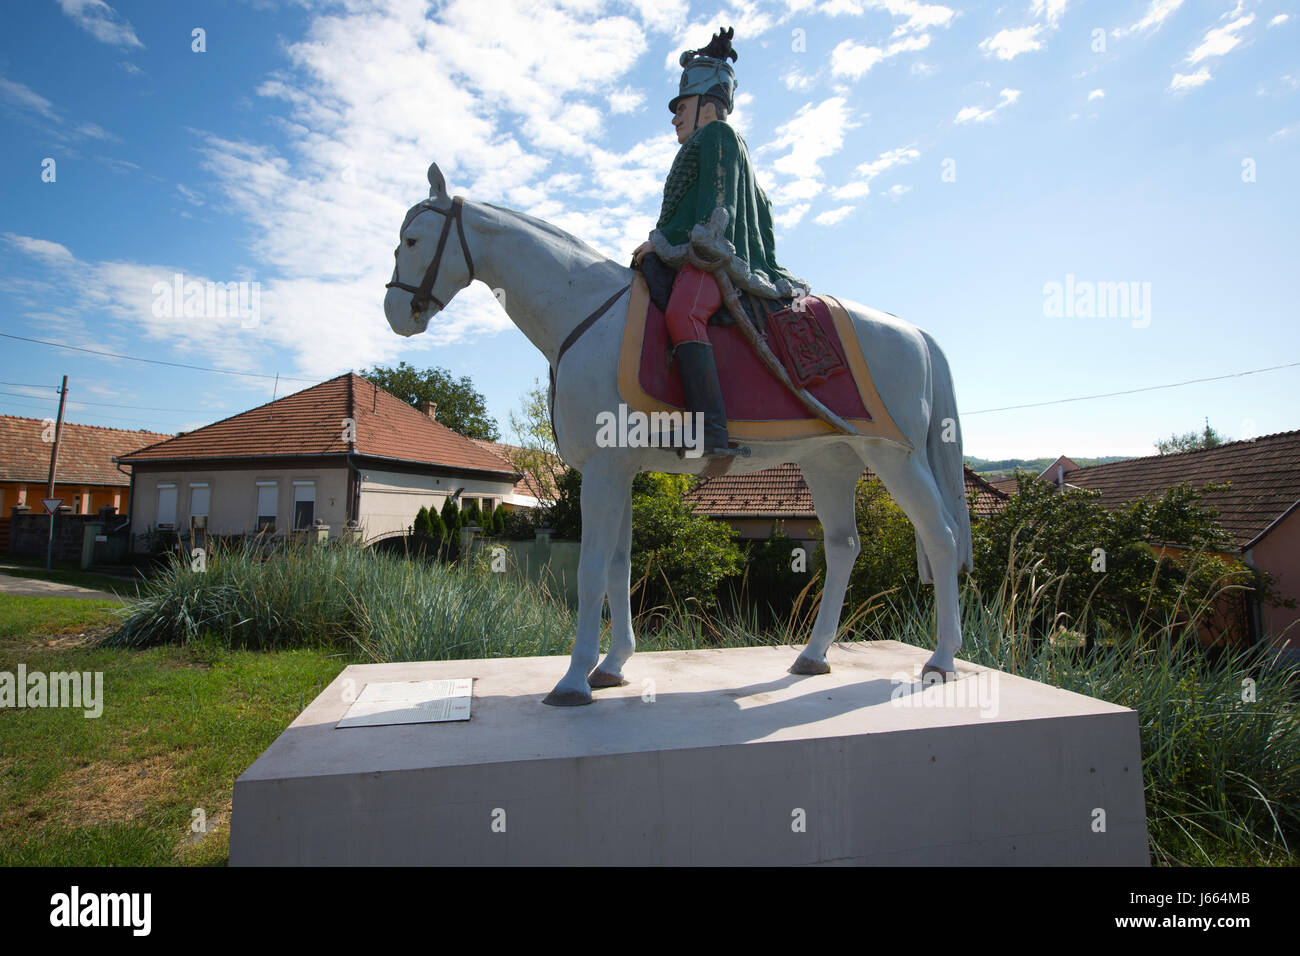 Statue of a Soldier of the 4th Hussar Regiment, Magyar huszár szobra (Statue of a Hungarian Hussar), Hungary, - Stock Image